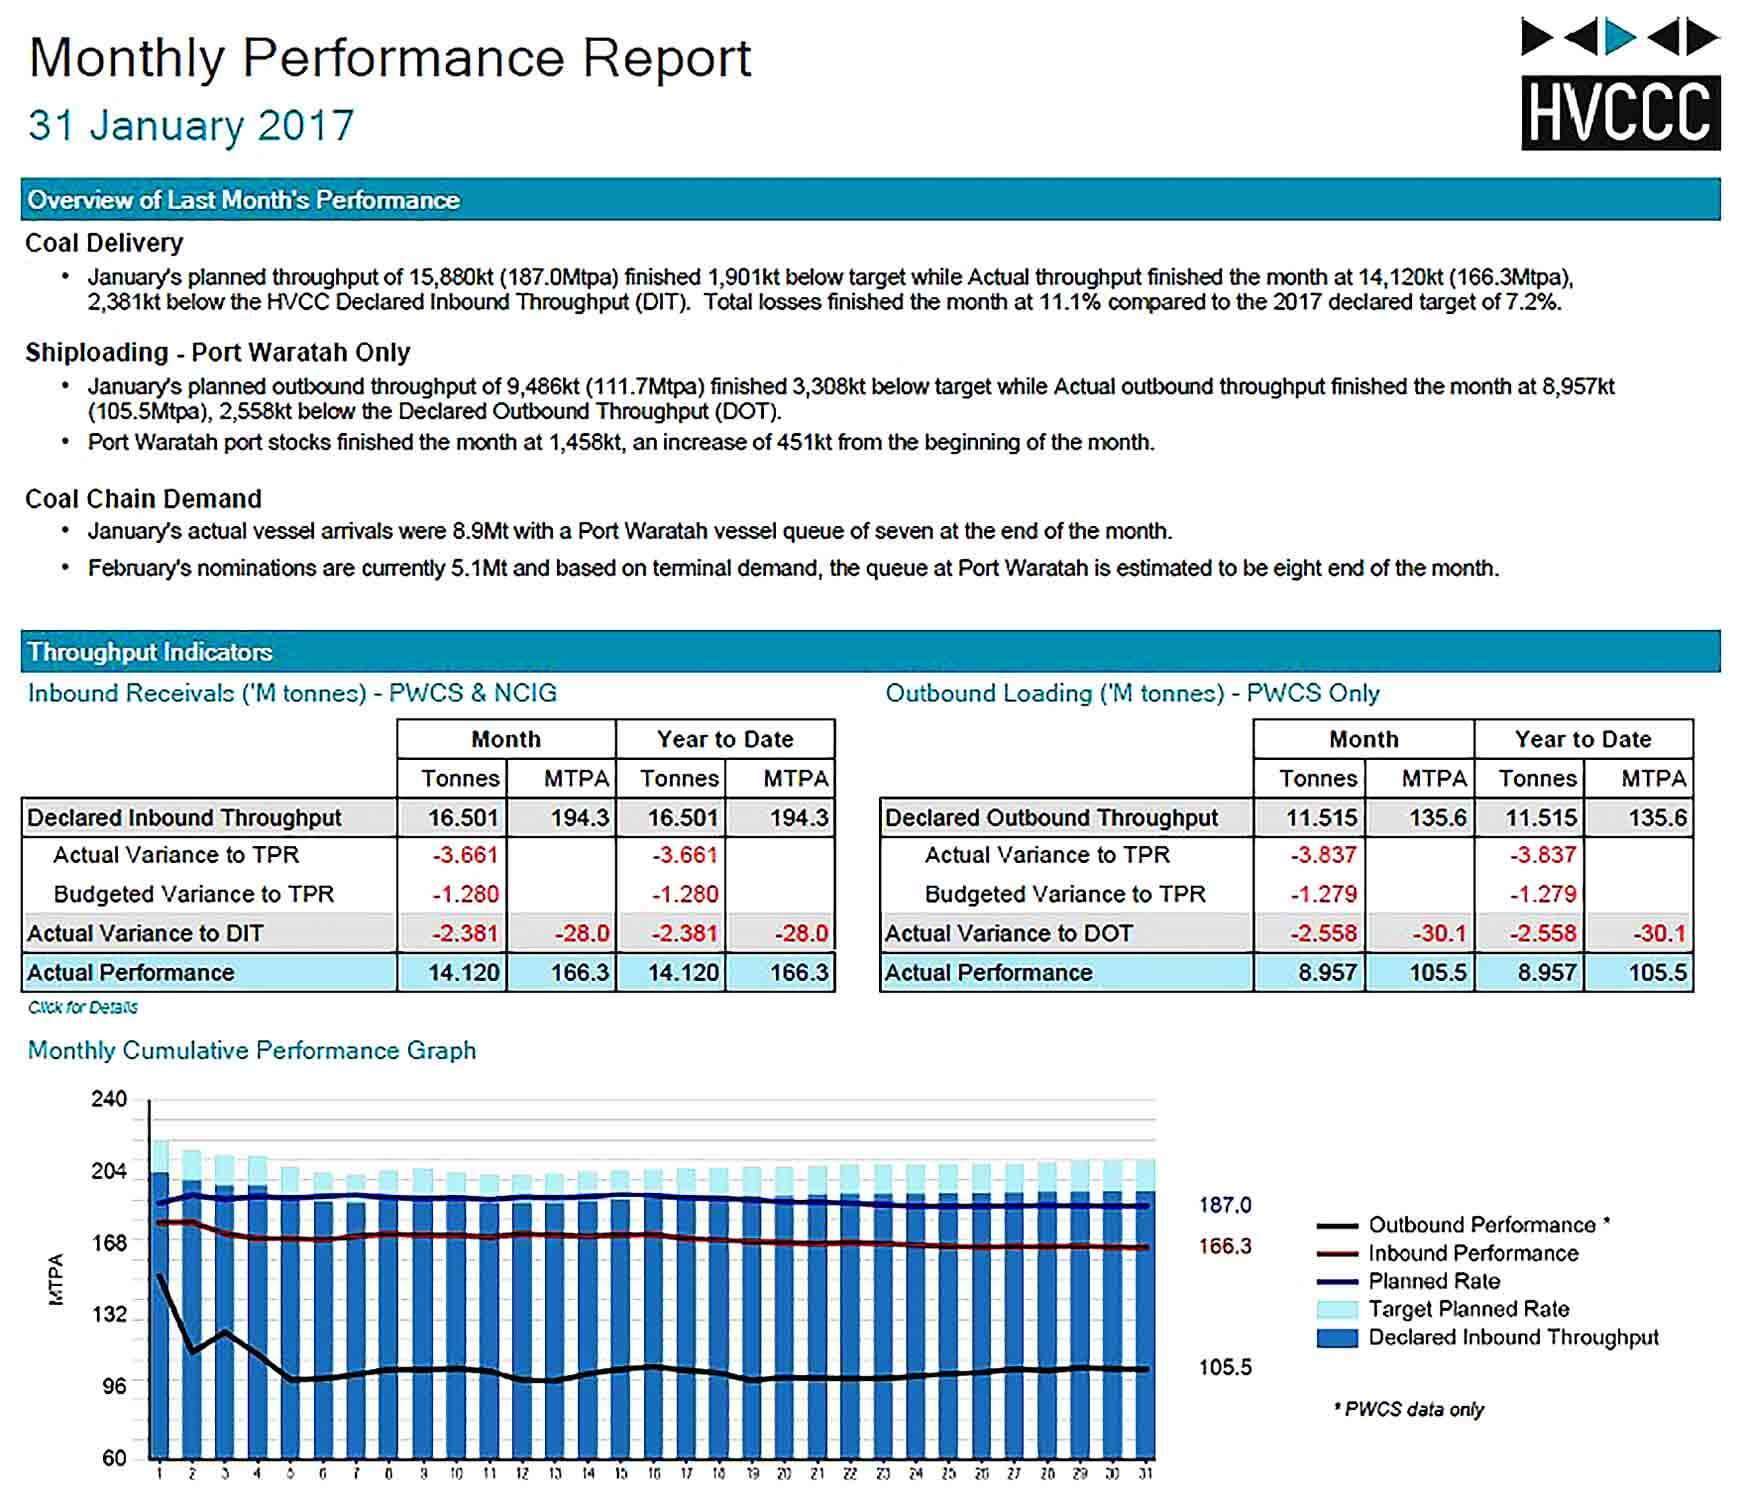 Sample Monthly Performance